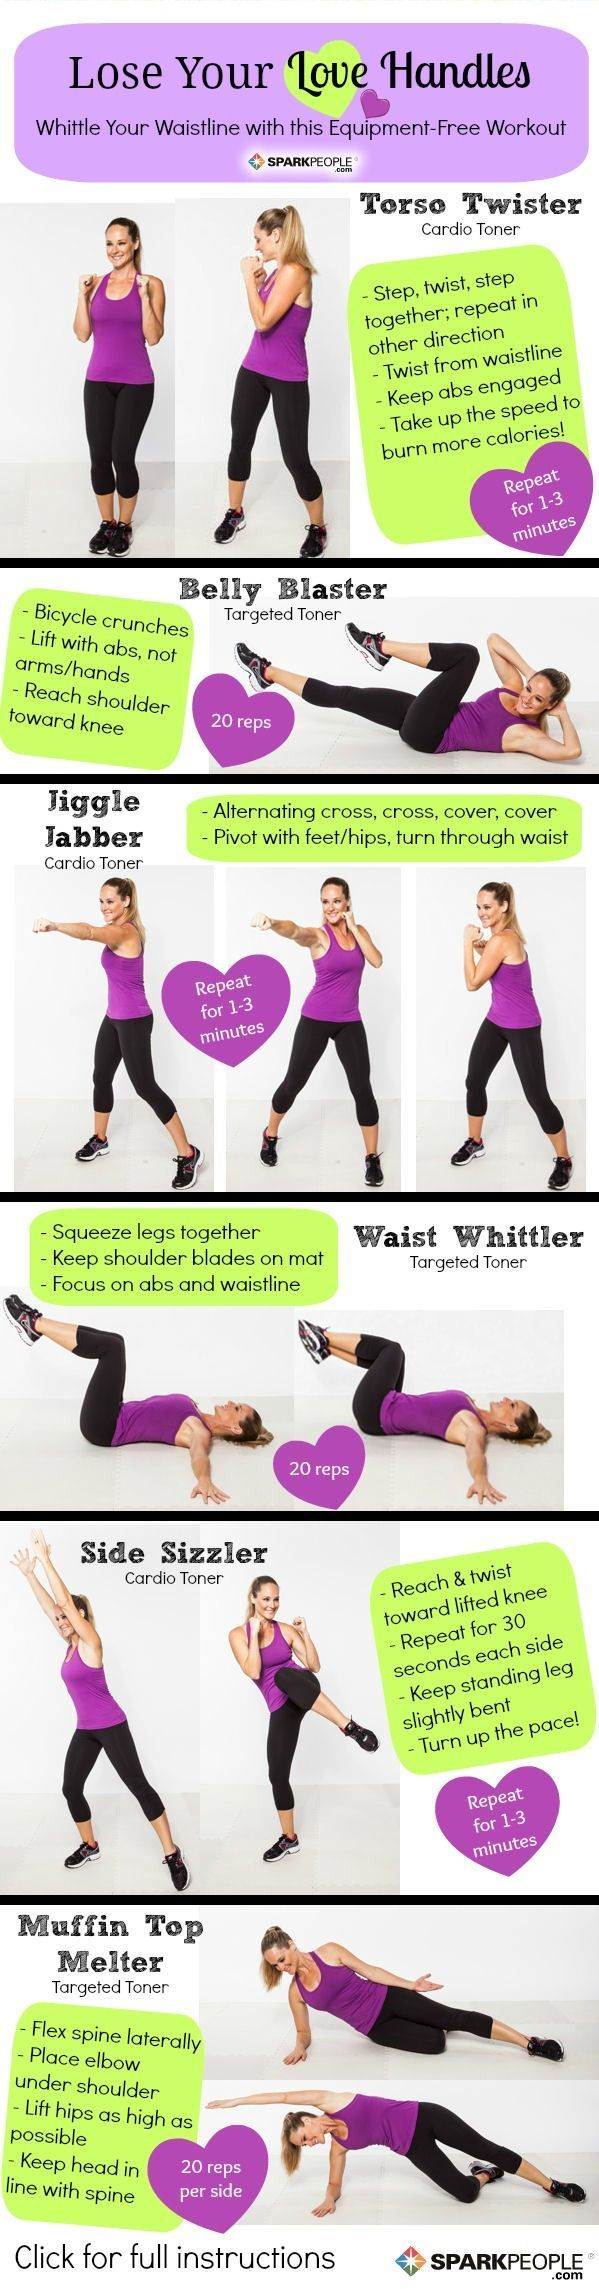 The 'Lose Your Love Handles' Workout: 6 Moves to Melt Your Muffin Top #healthyVday